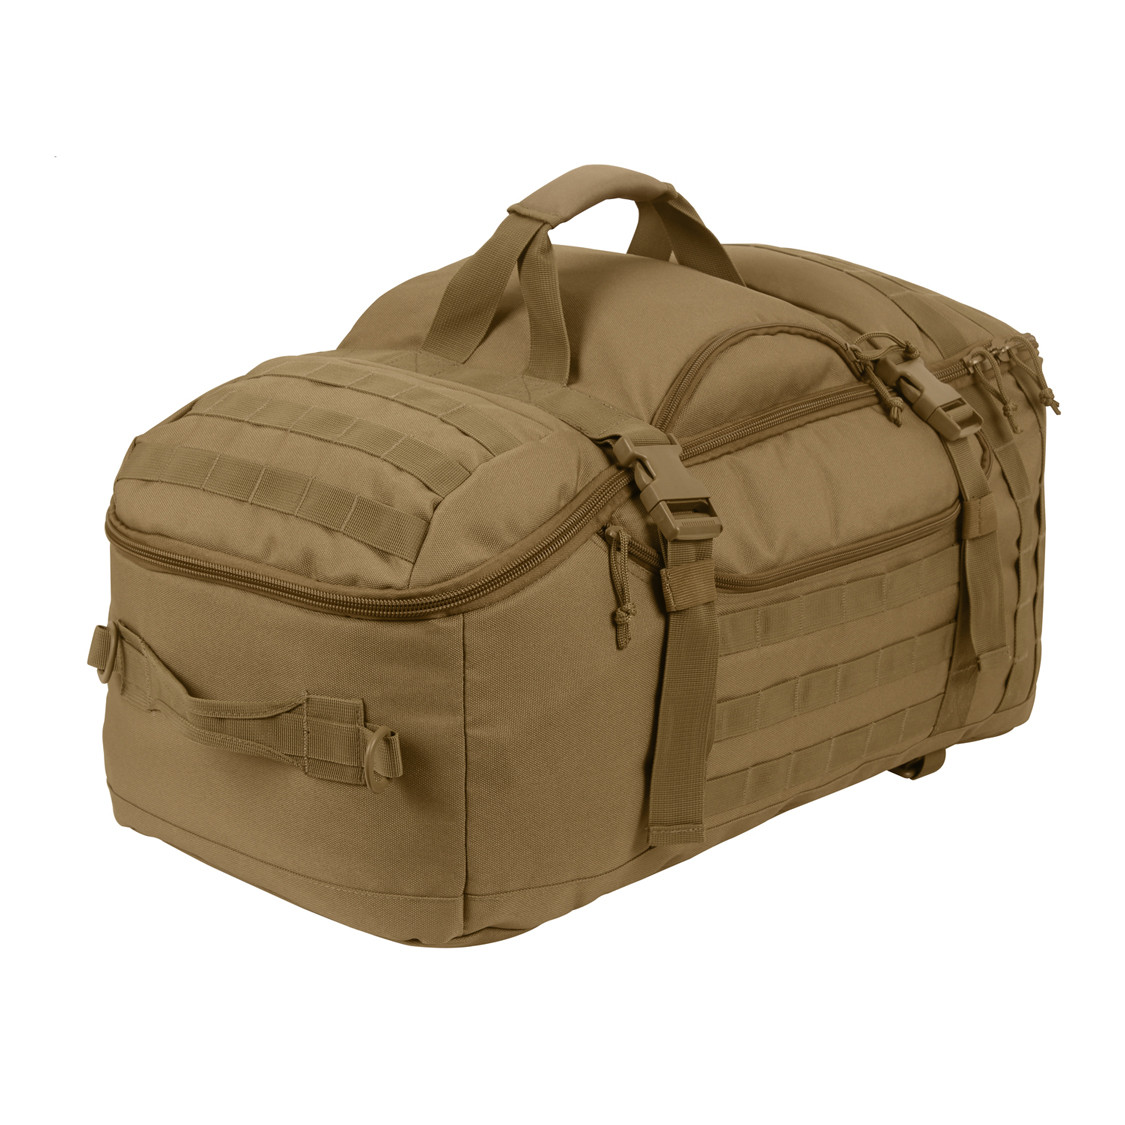 Shop Coyote 3 In 1 Convertible Mission Bags - Fatigues Army Navy Gear c61710af1fddc